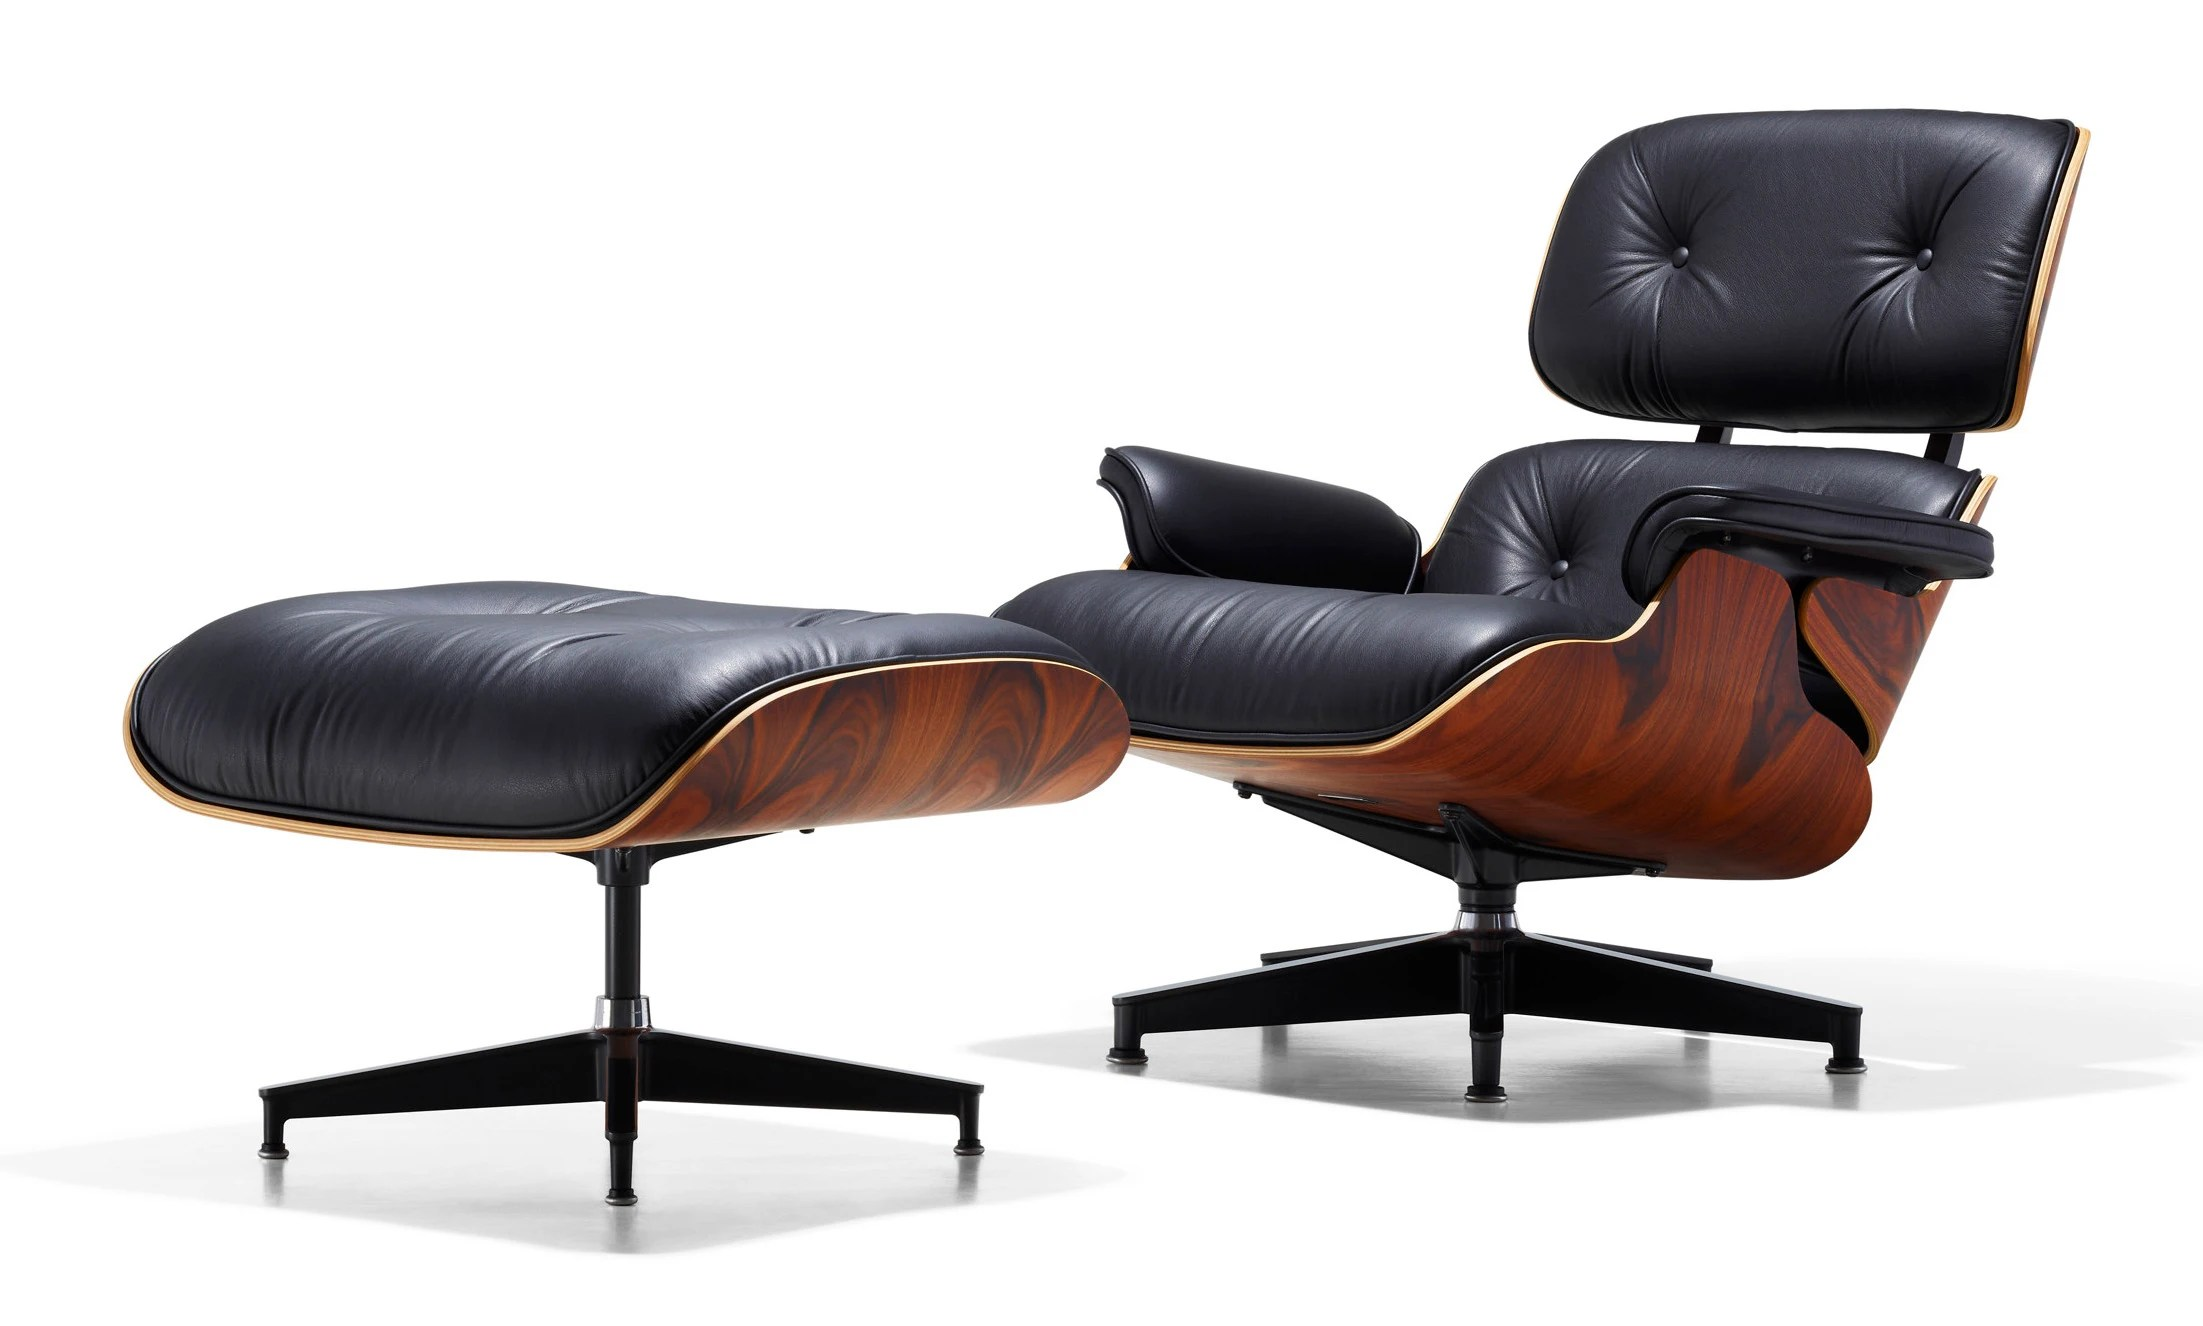 Eames Lounge Herman Miller Eames® Lounge Chair And Ottoman - Gr Shop Canada